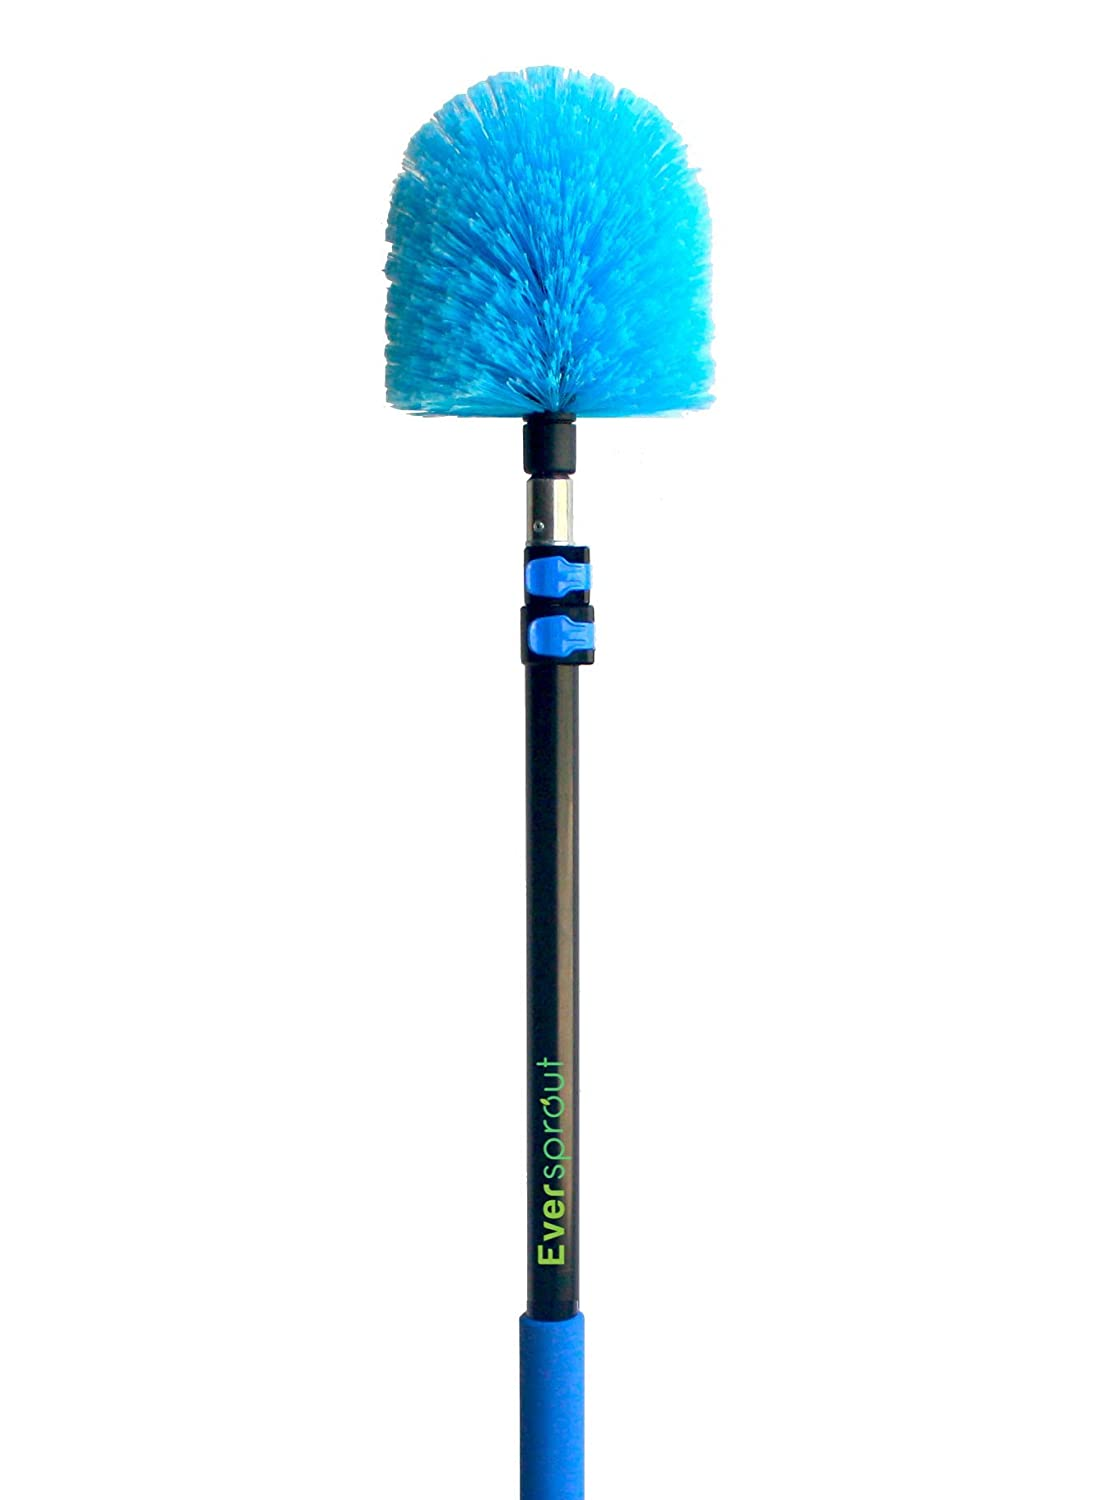 EVERSPROUT 5-to-13 Foot Cobweb Duster and Extension-Pole Combo Indoor /& Outdoor Use Brush Attachment 3-Stage Aluminum Pole 20 Foot Reach, Soft Bristles   Hand Packaged Lightweight